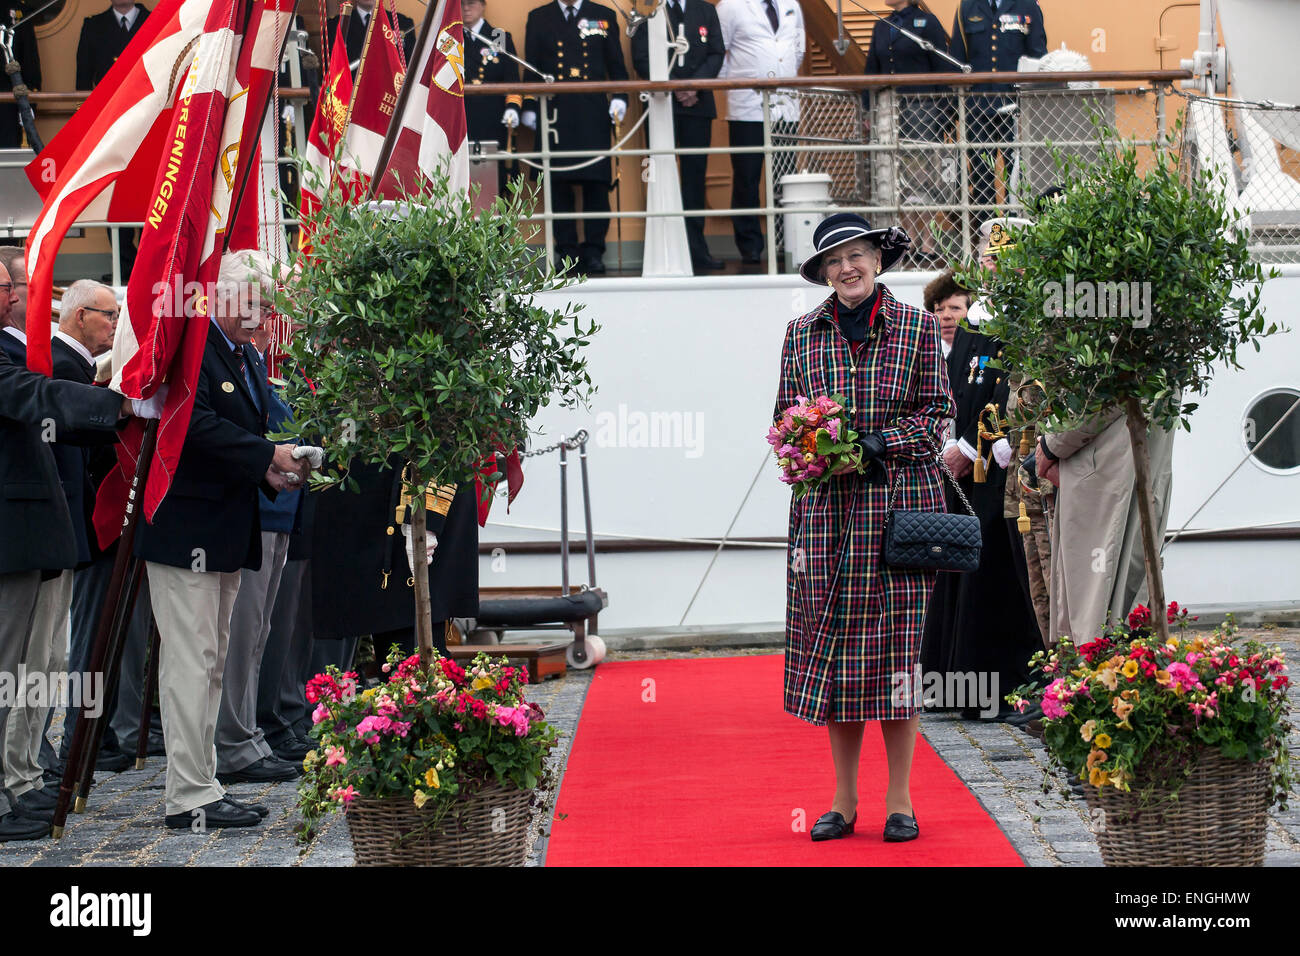 Helsingore, Denmark. 5th May, 2015. H. M. Queen Margrethe arrives onboard the royal ship, Danneborg, with the Prince - Stock Image